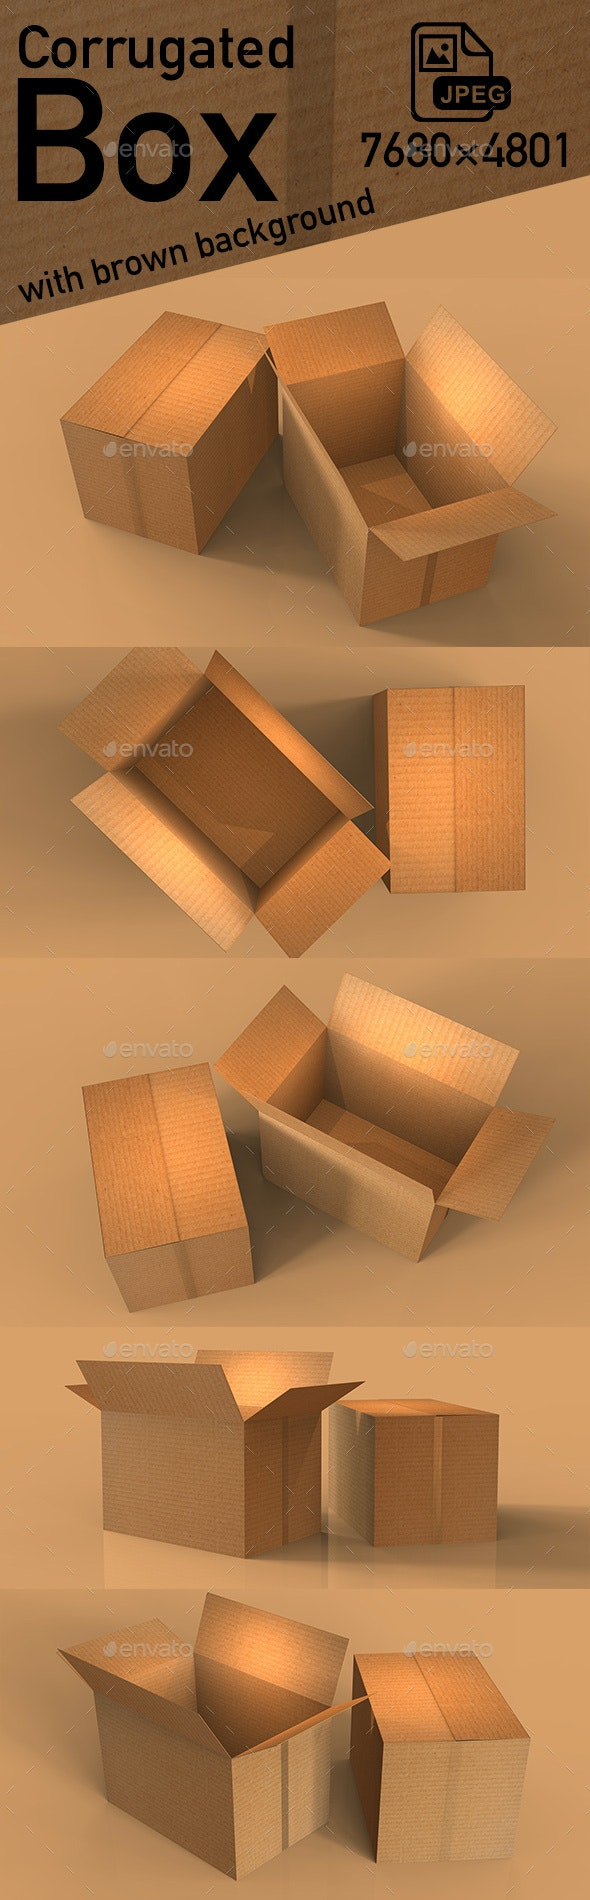 A Cardboard Box with Brown Background - 3D Backgrounds